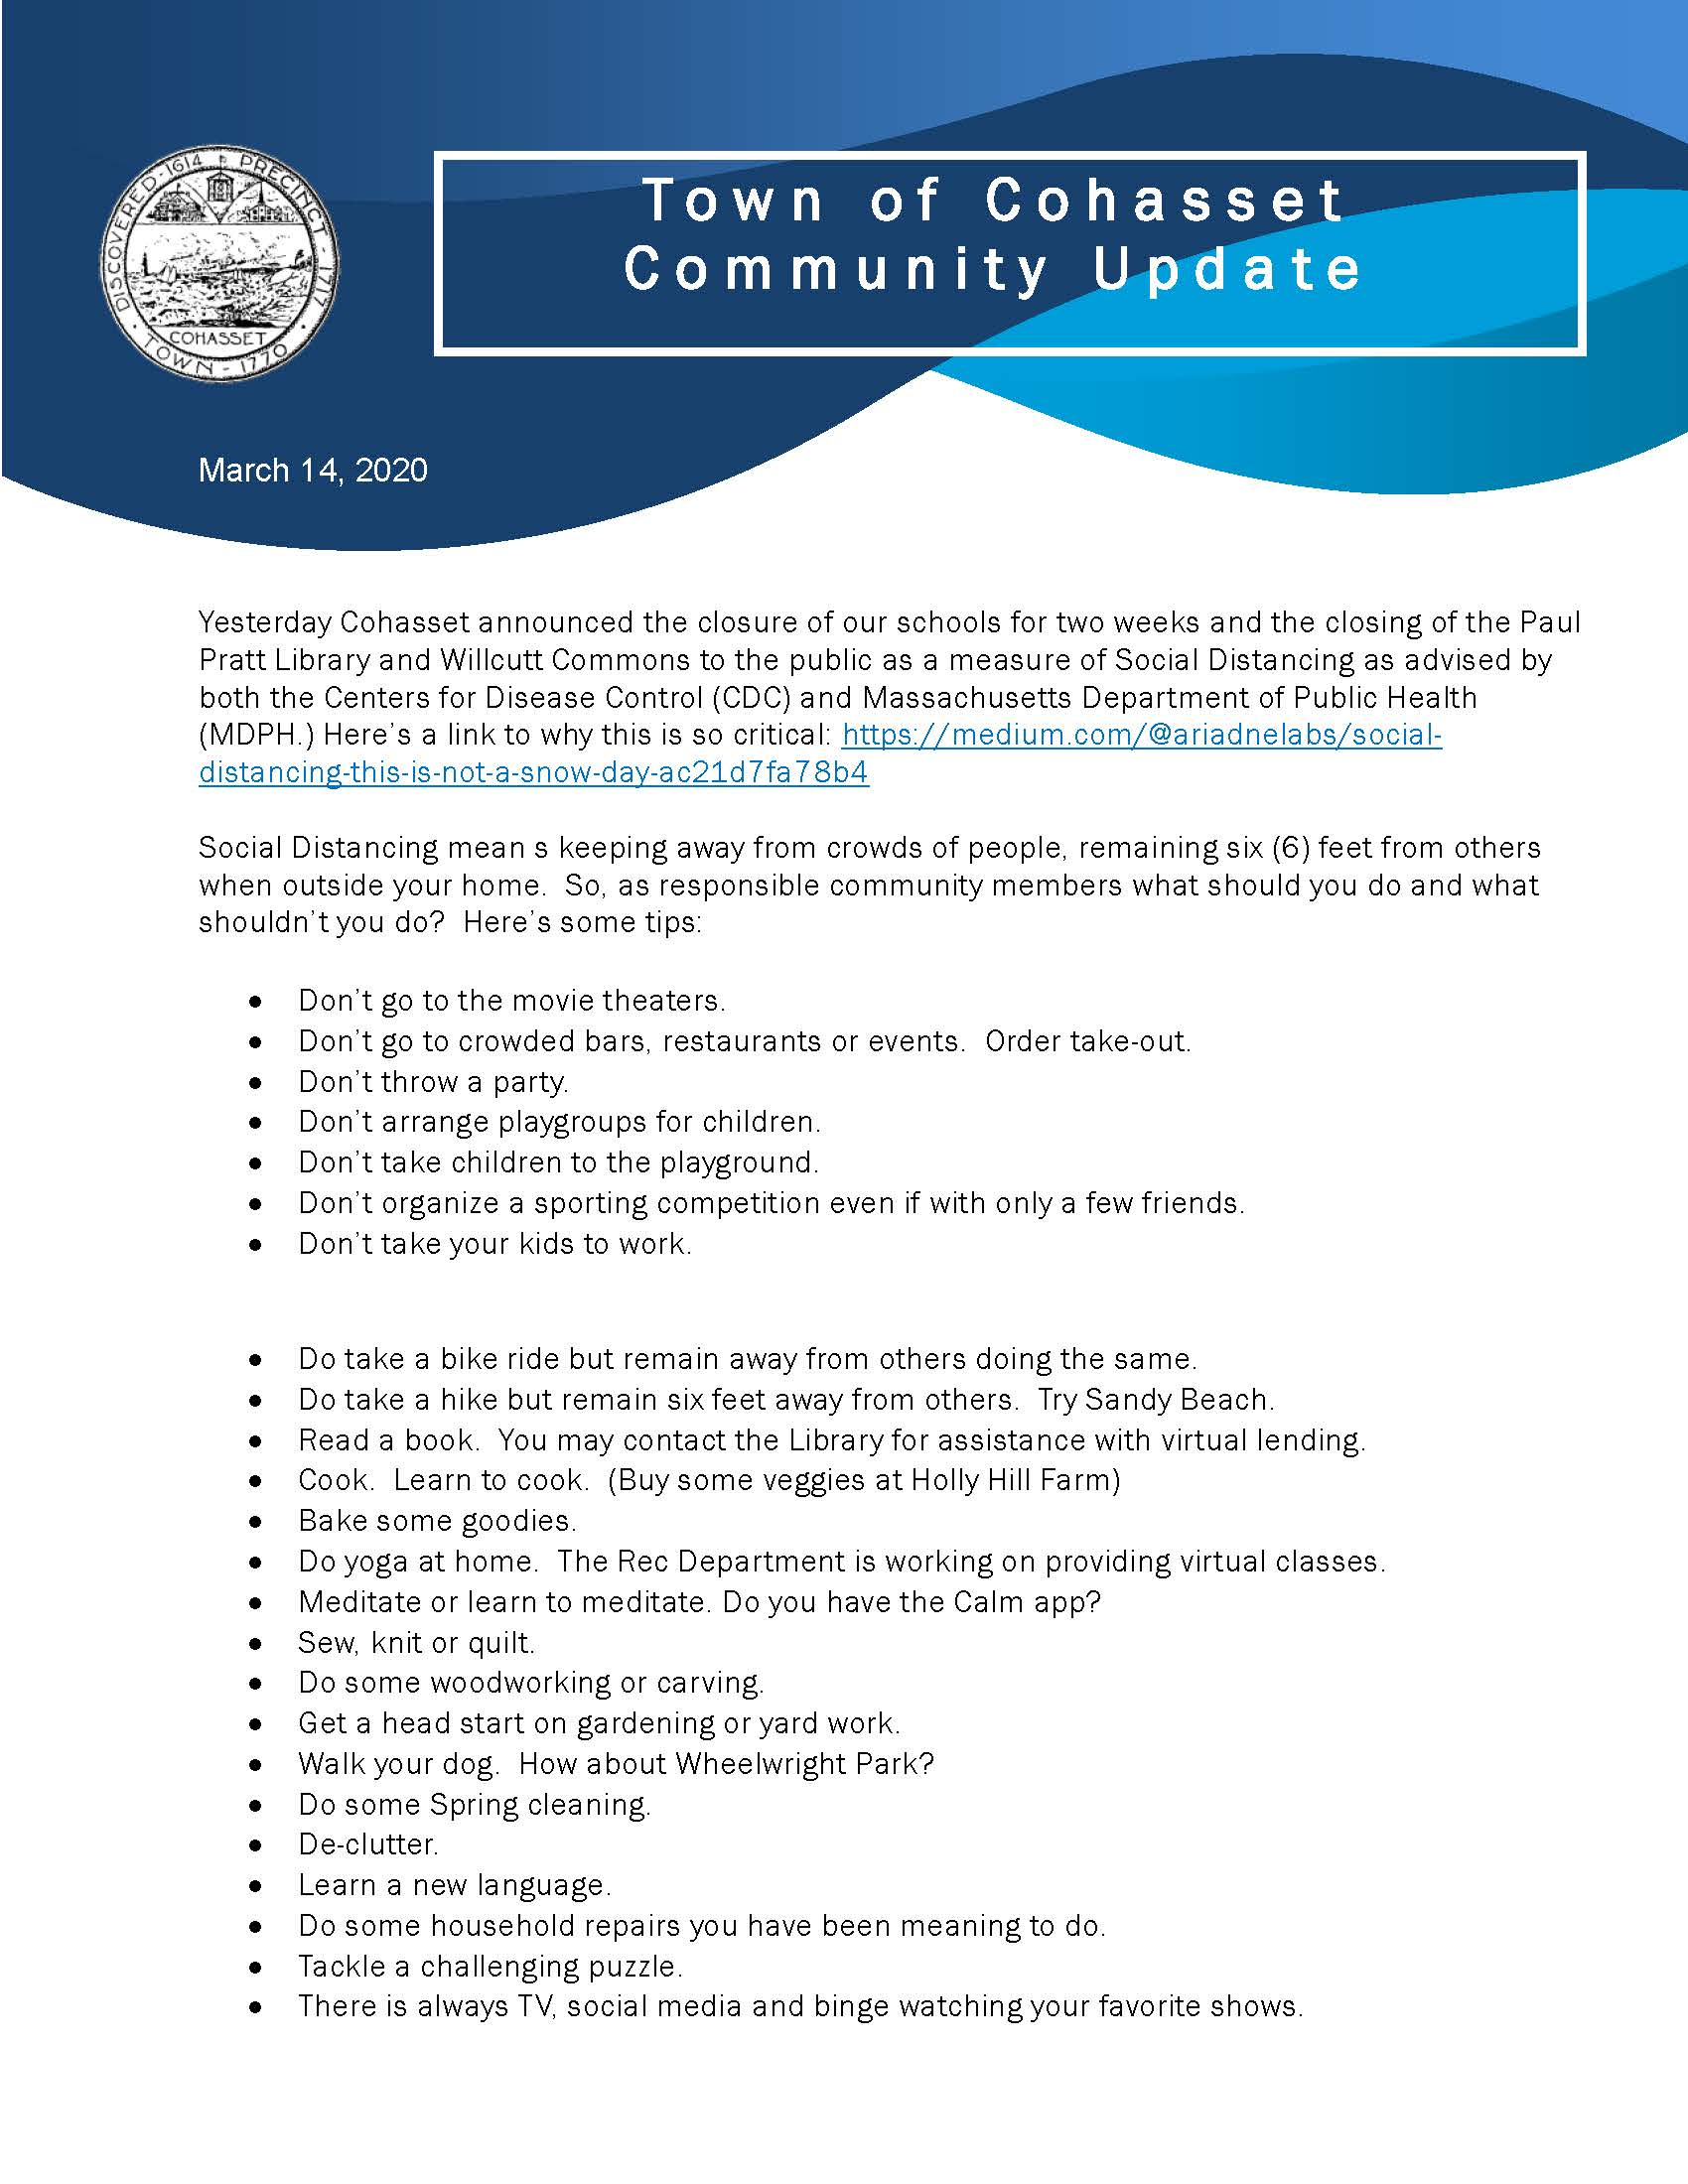 Community Update Template 3-14-20(Image)